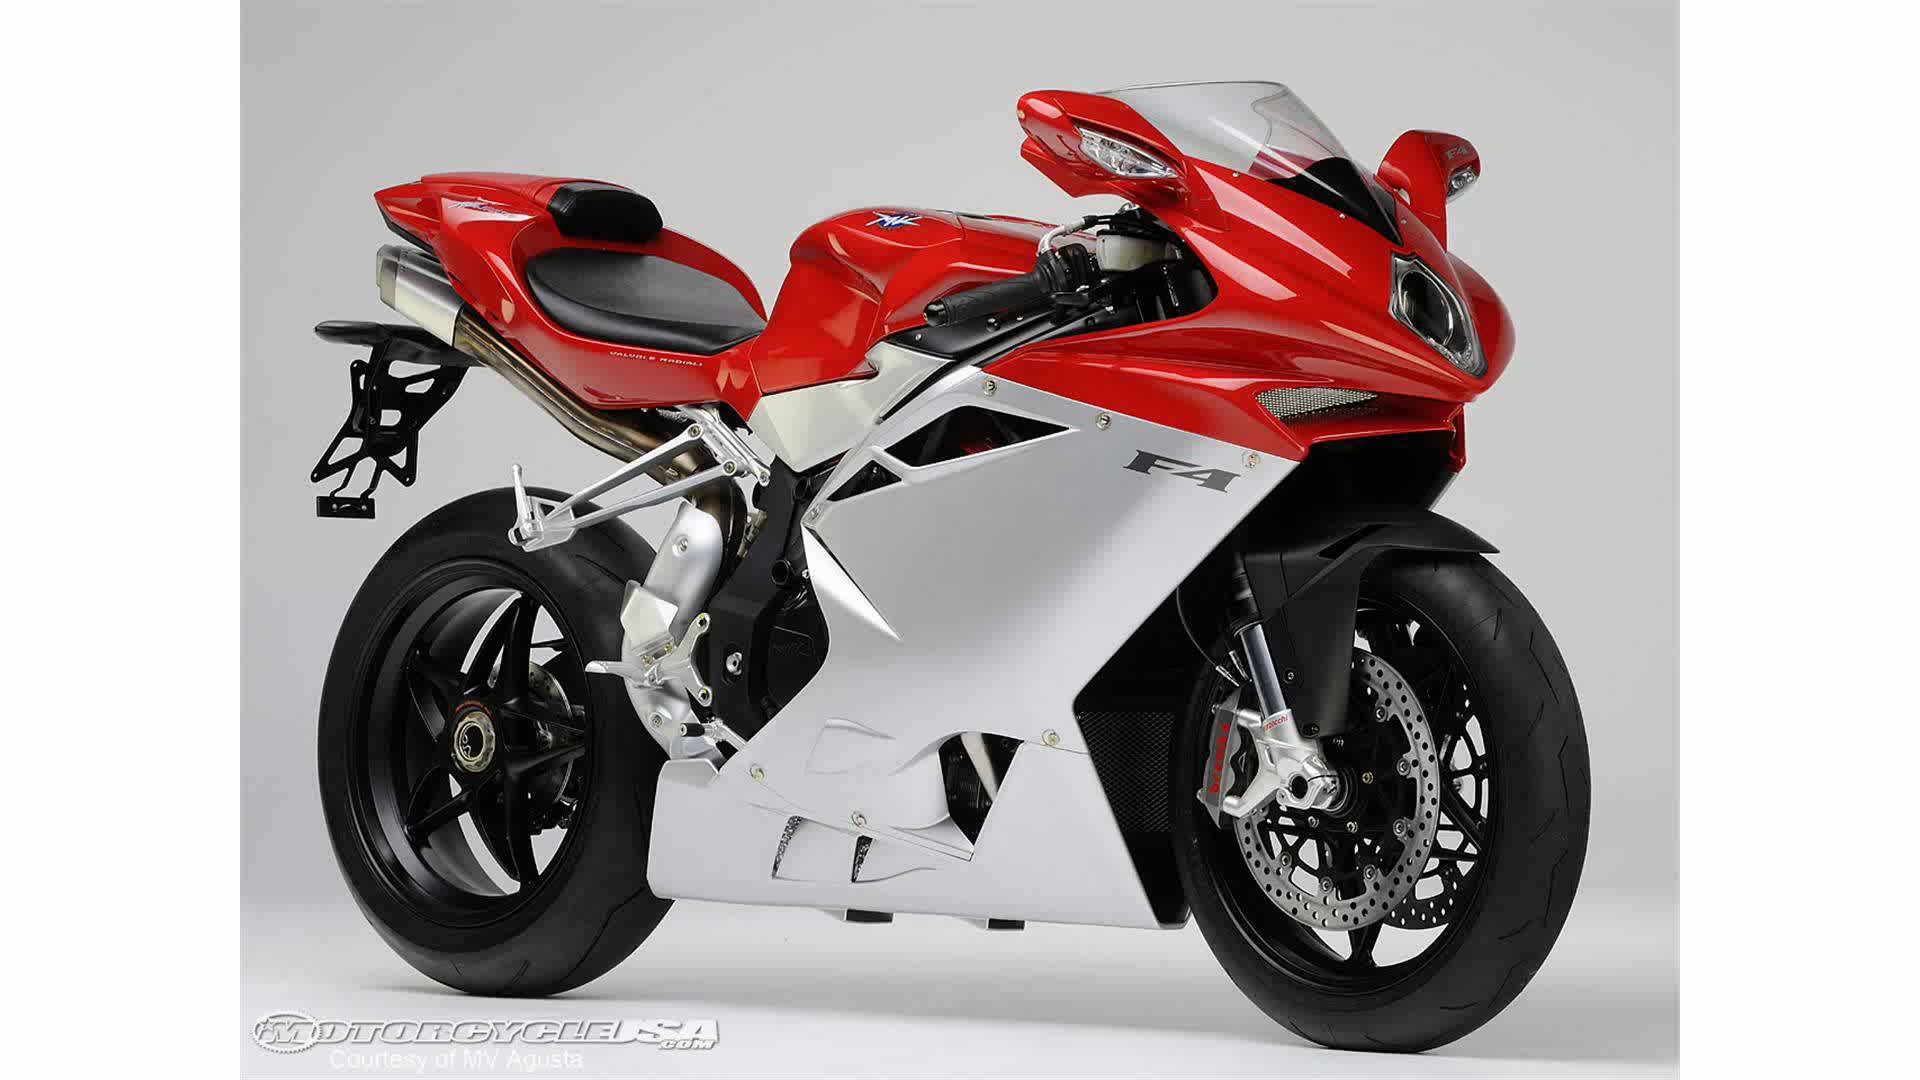 MV Agusta F4 1000 S 2006 images #113600